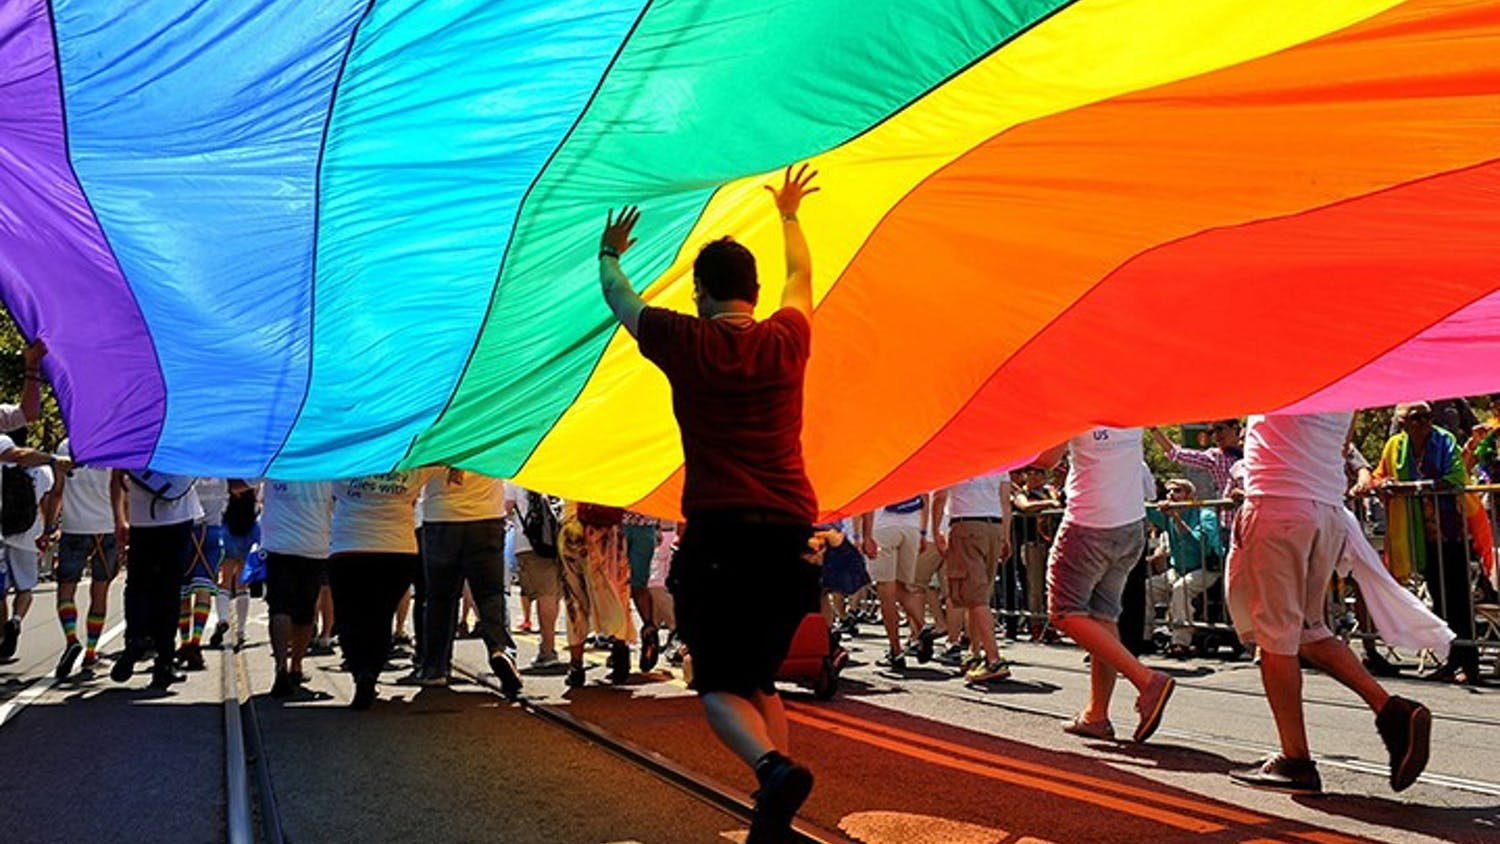 Parade participants march down Market Street carrying the rainbow flag during the annual Gay Pride parade in San Francisco on June 30, 2013. (Wally Skalij/Los Angeles Times/TNS)